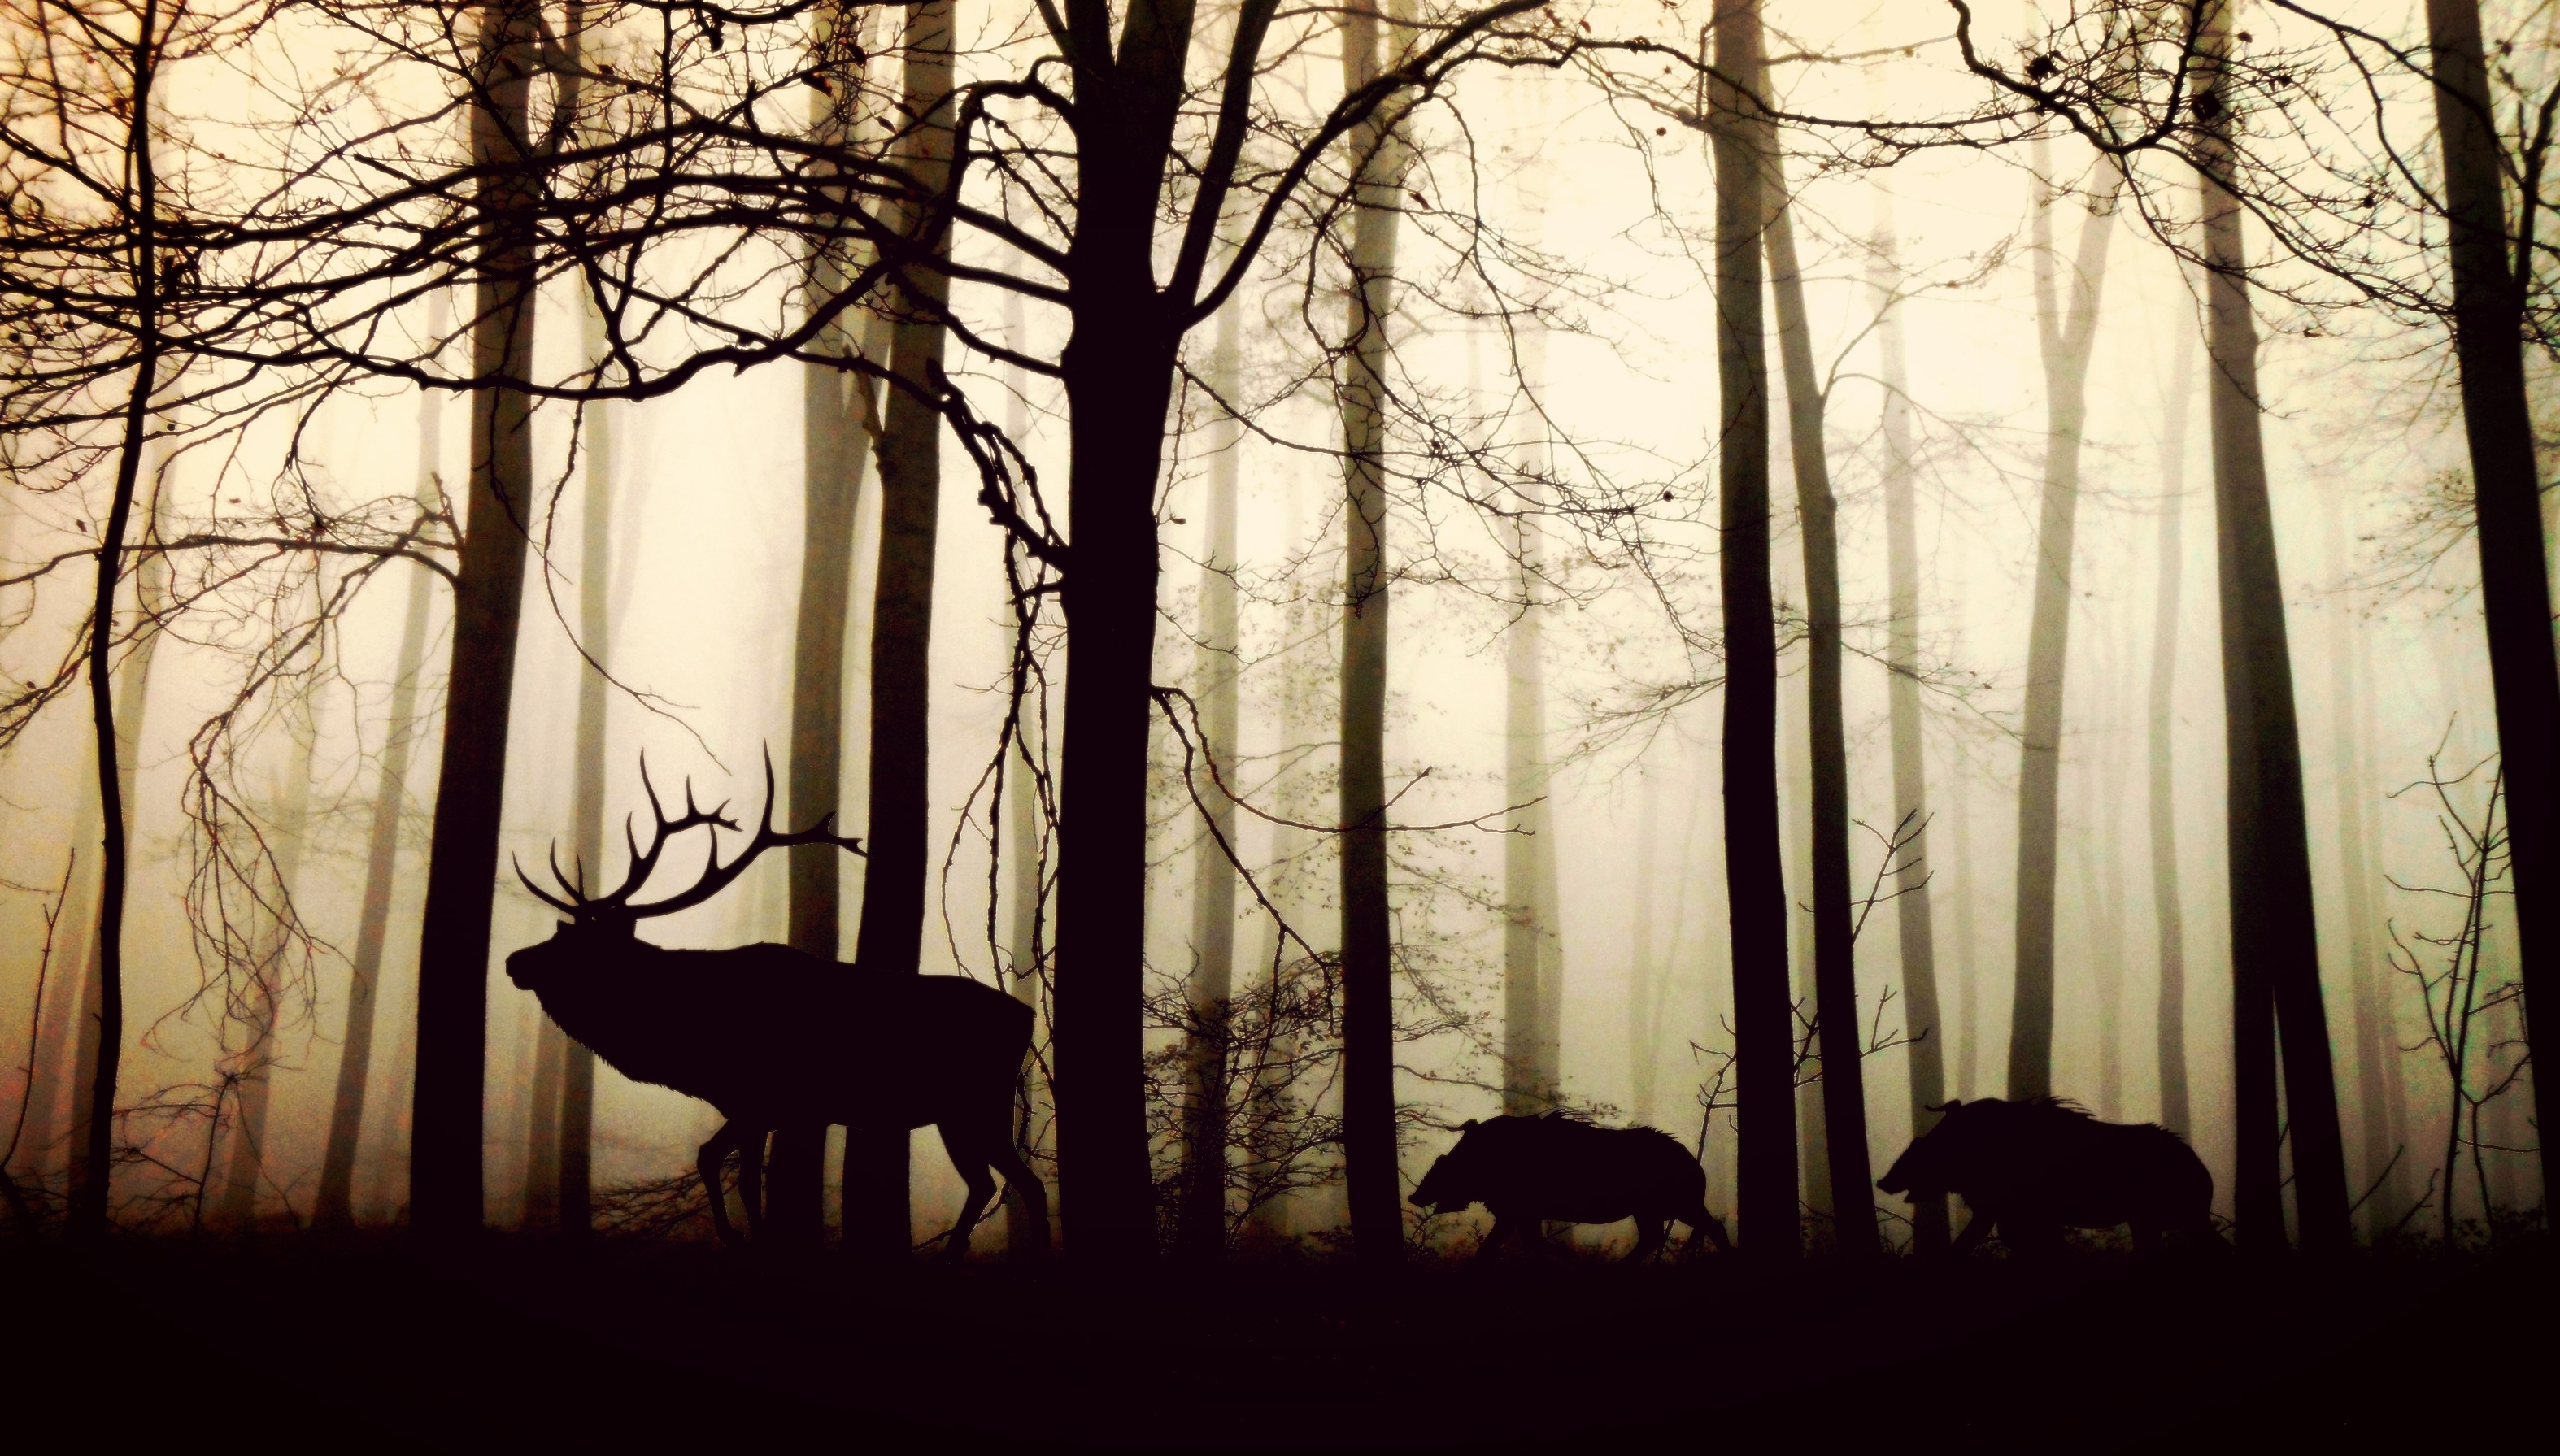 Moose and wild boars in the forest, trees, forest, animals, walking, shadow, branches,